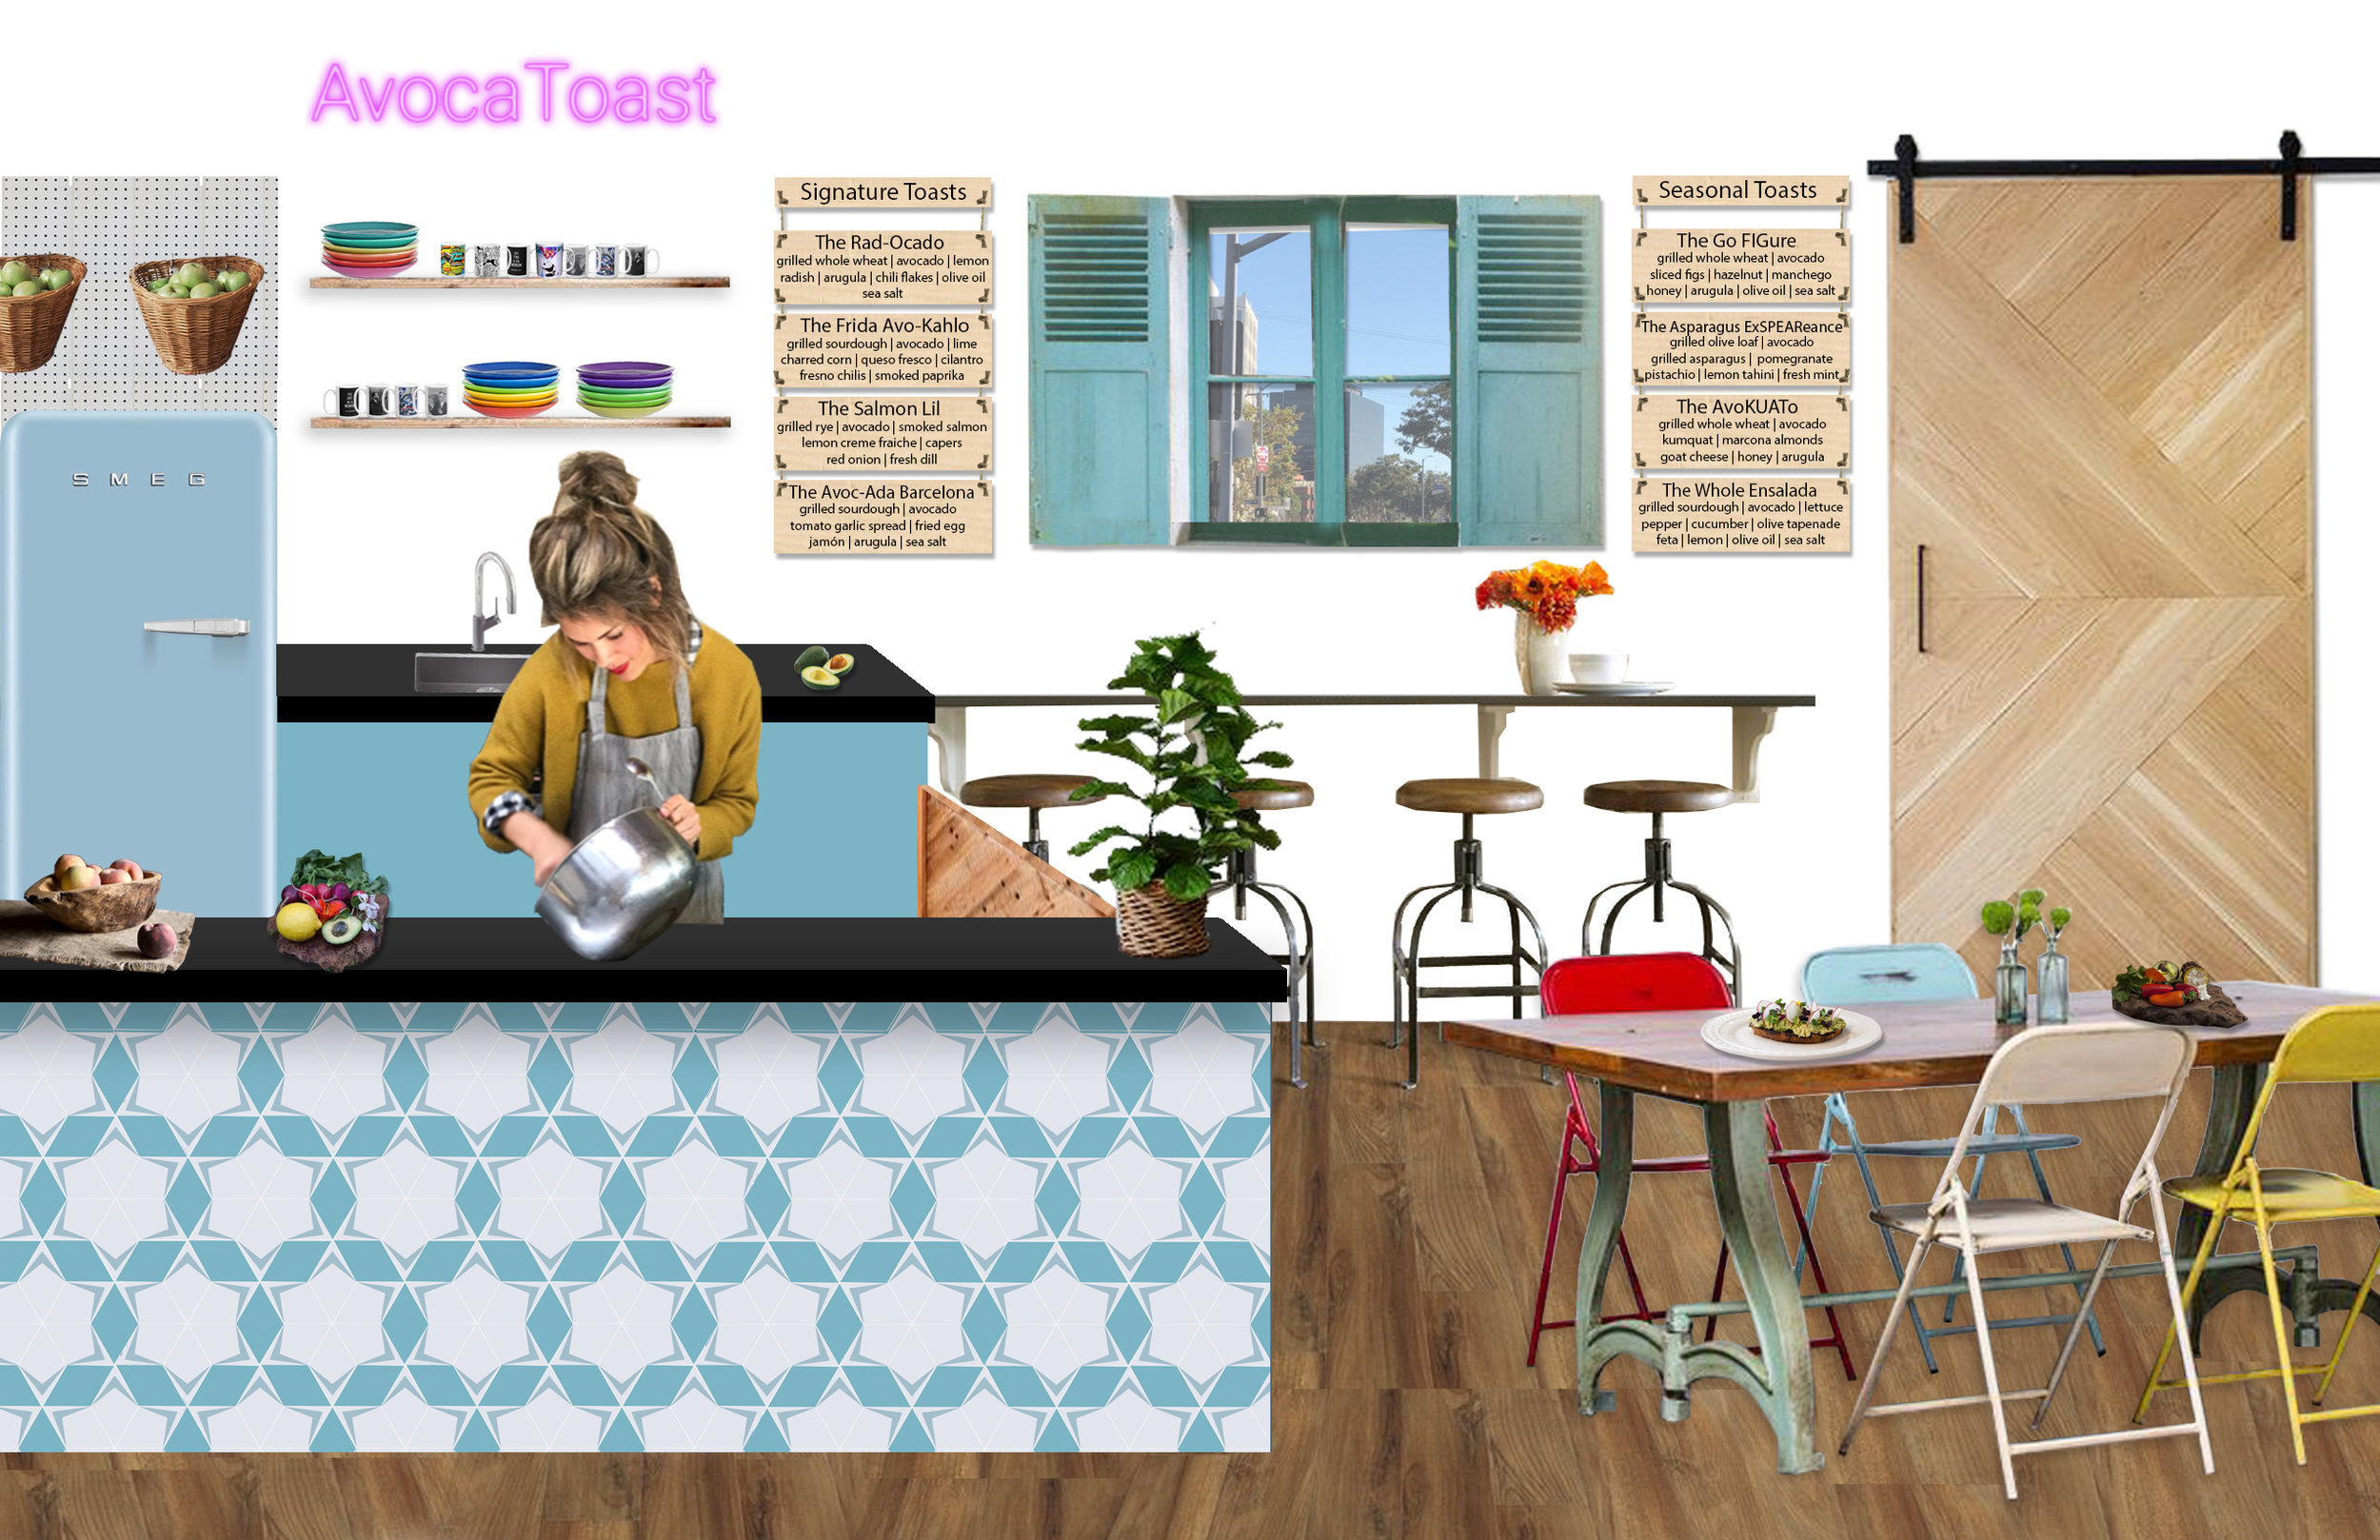 AvocaToast LA, avocado toast, conceptual design, schematic design, graphic, Los Angeles, foodie